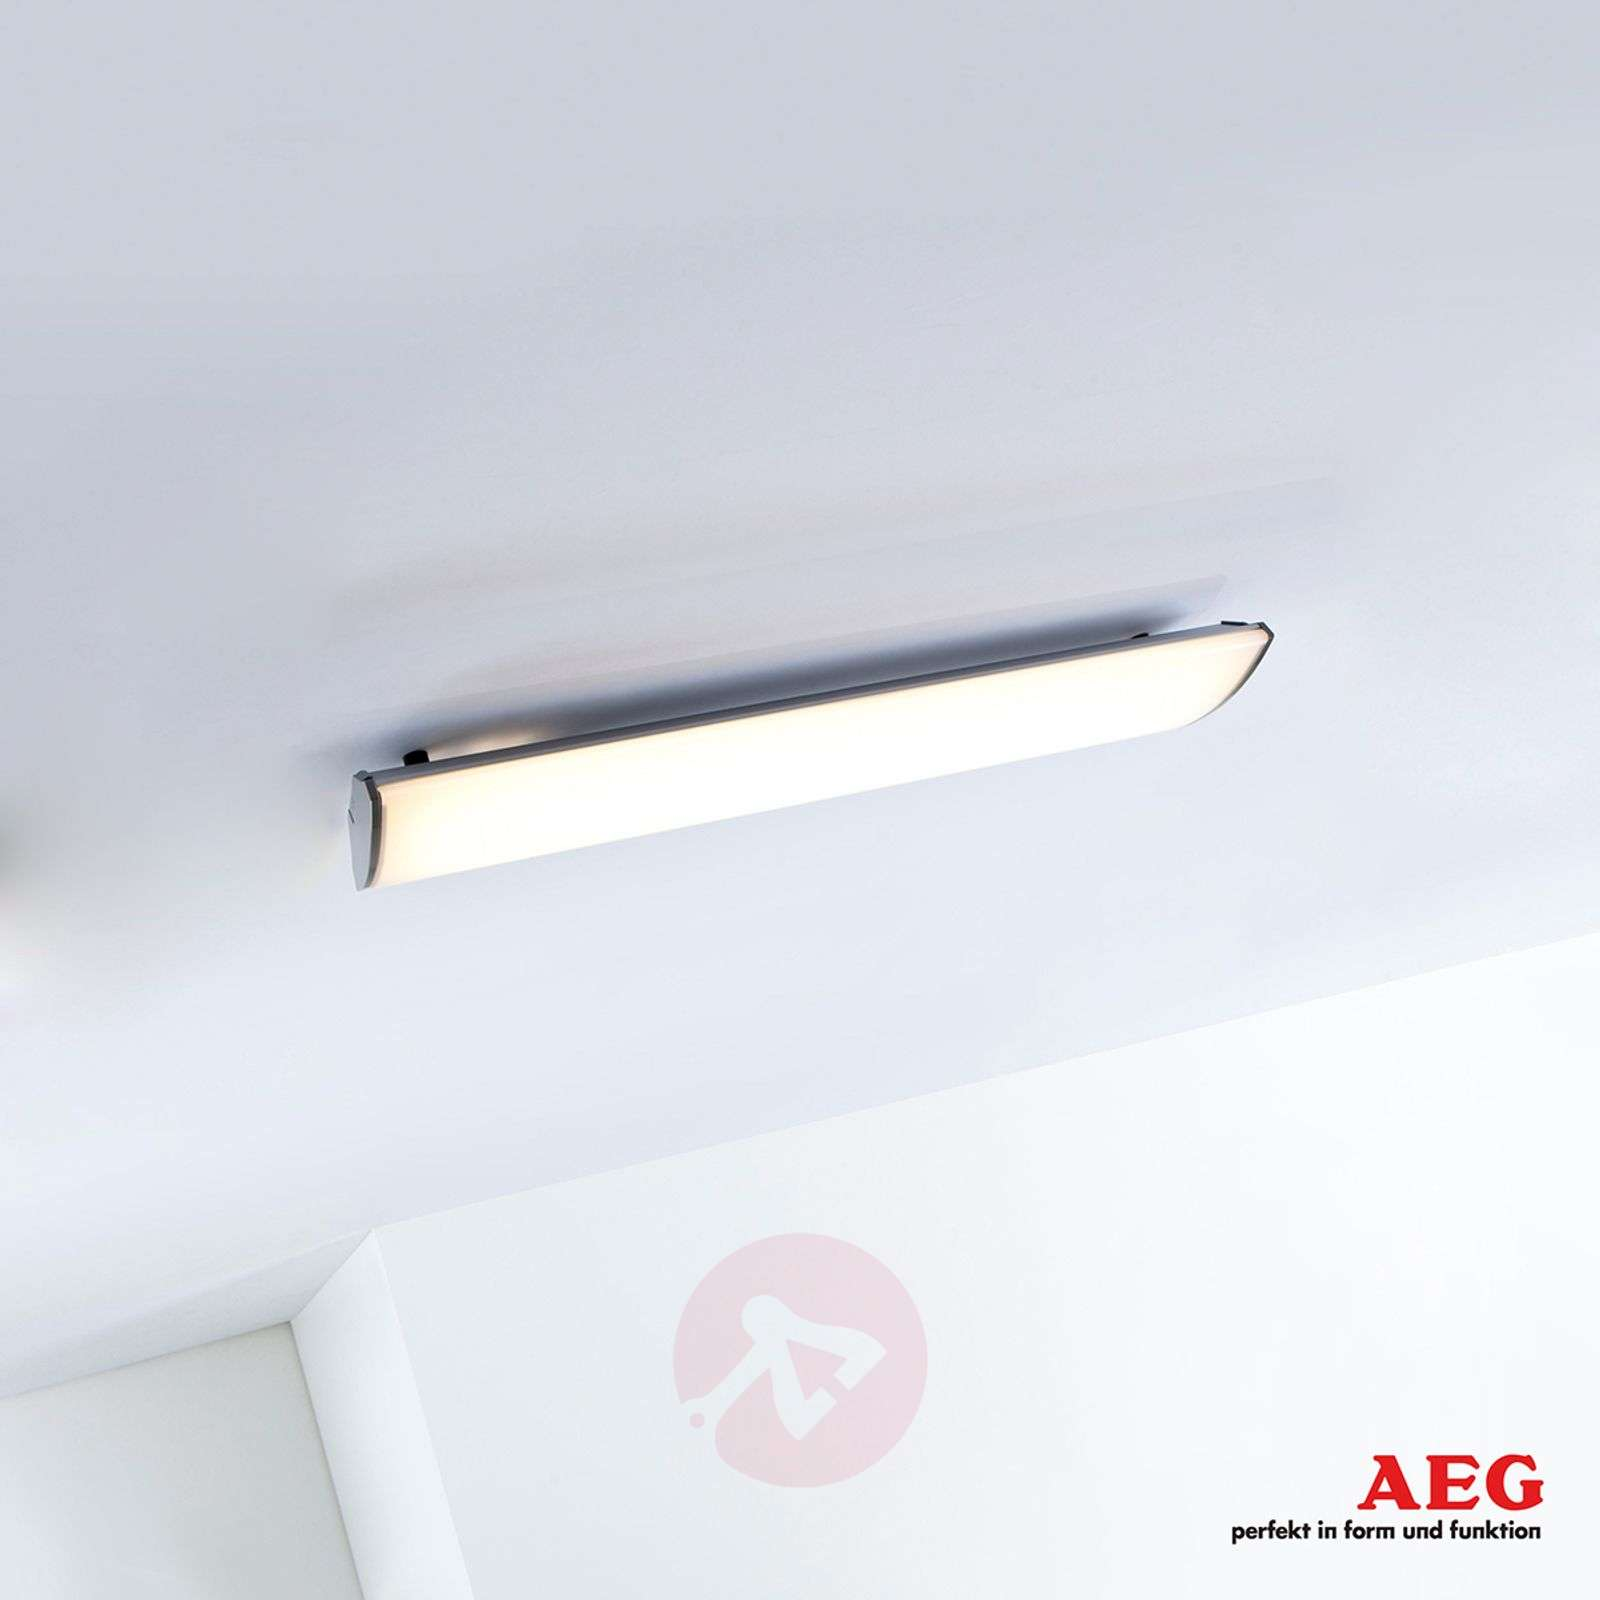 LED Office - lampa sufitowa marki AEG, 25 W